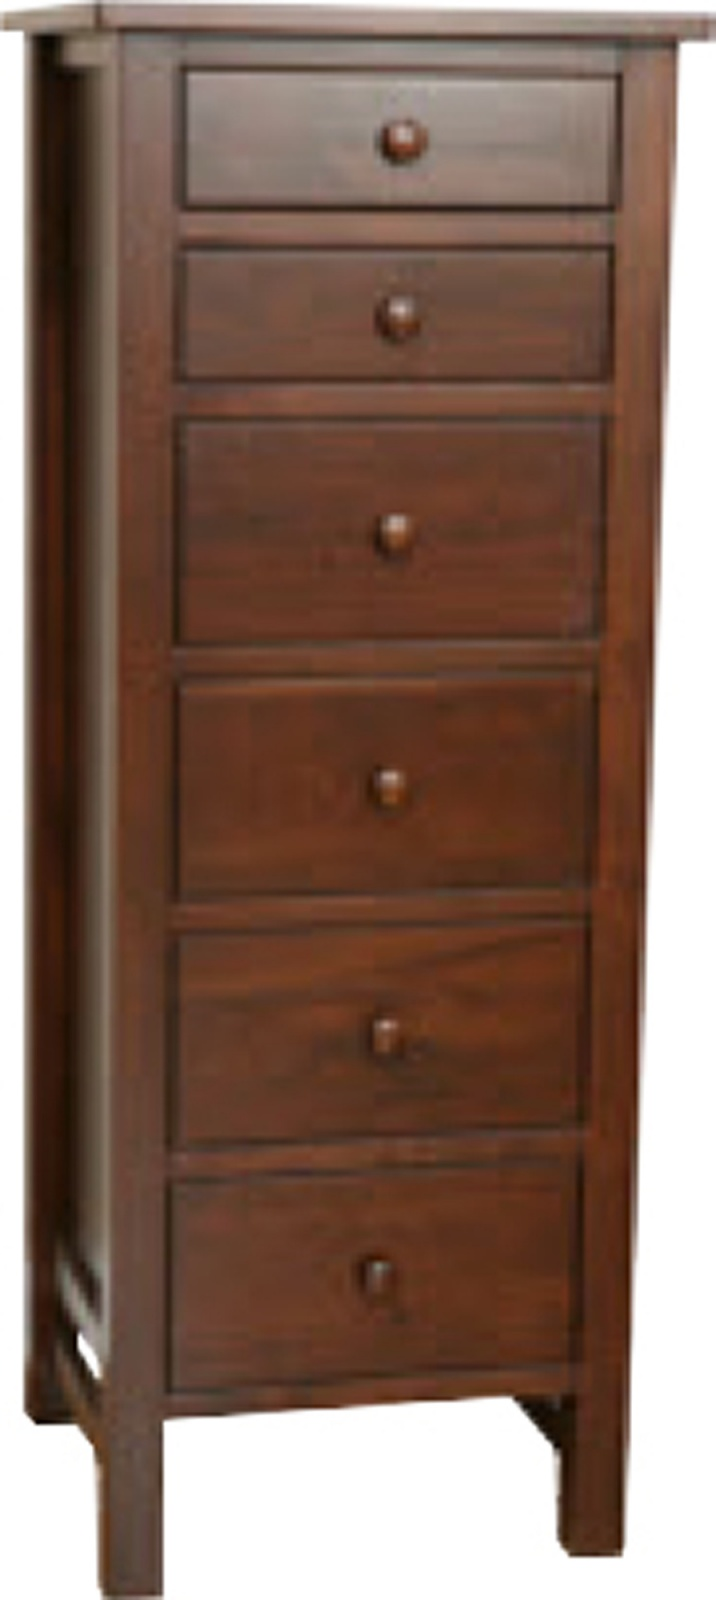 CA-546 Lingerie Chest.jpg